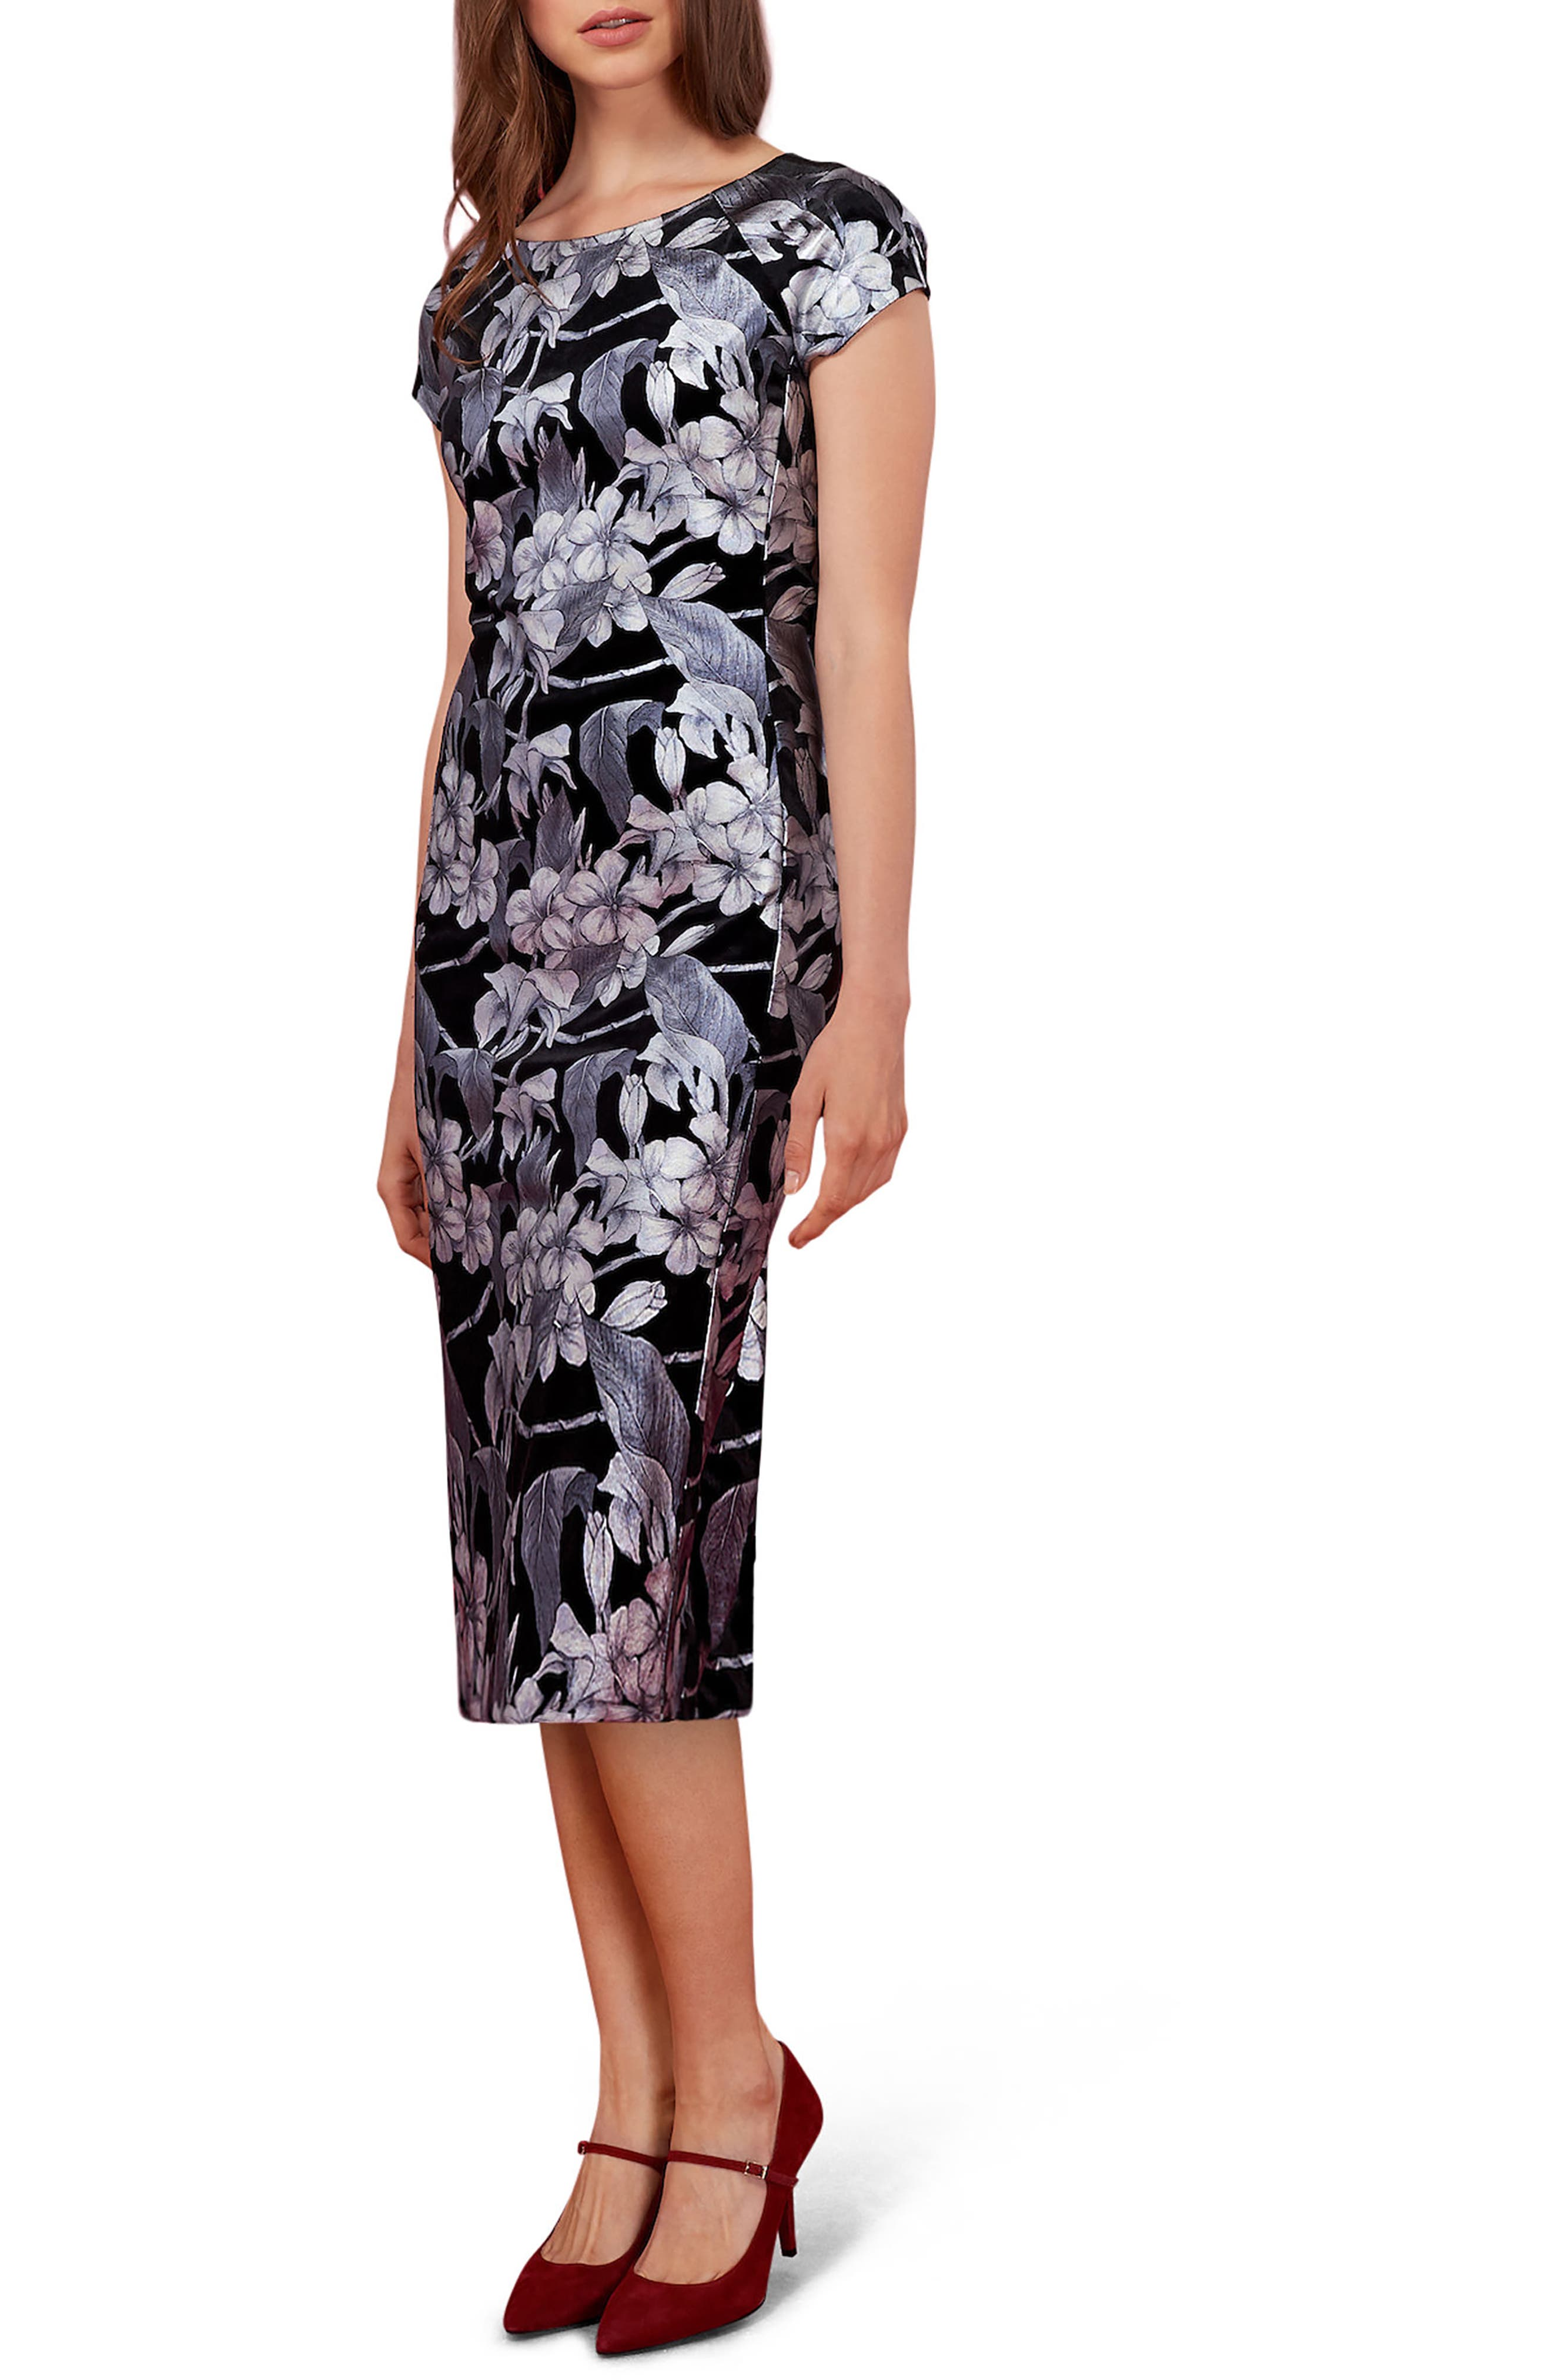 Floral Print Velvet Midi Dress,                             Main thumbnail 1, color,                             Black/ Silver